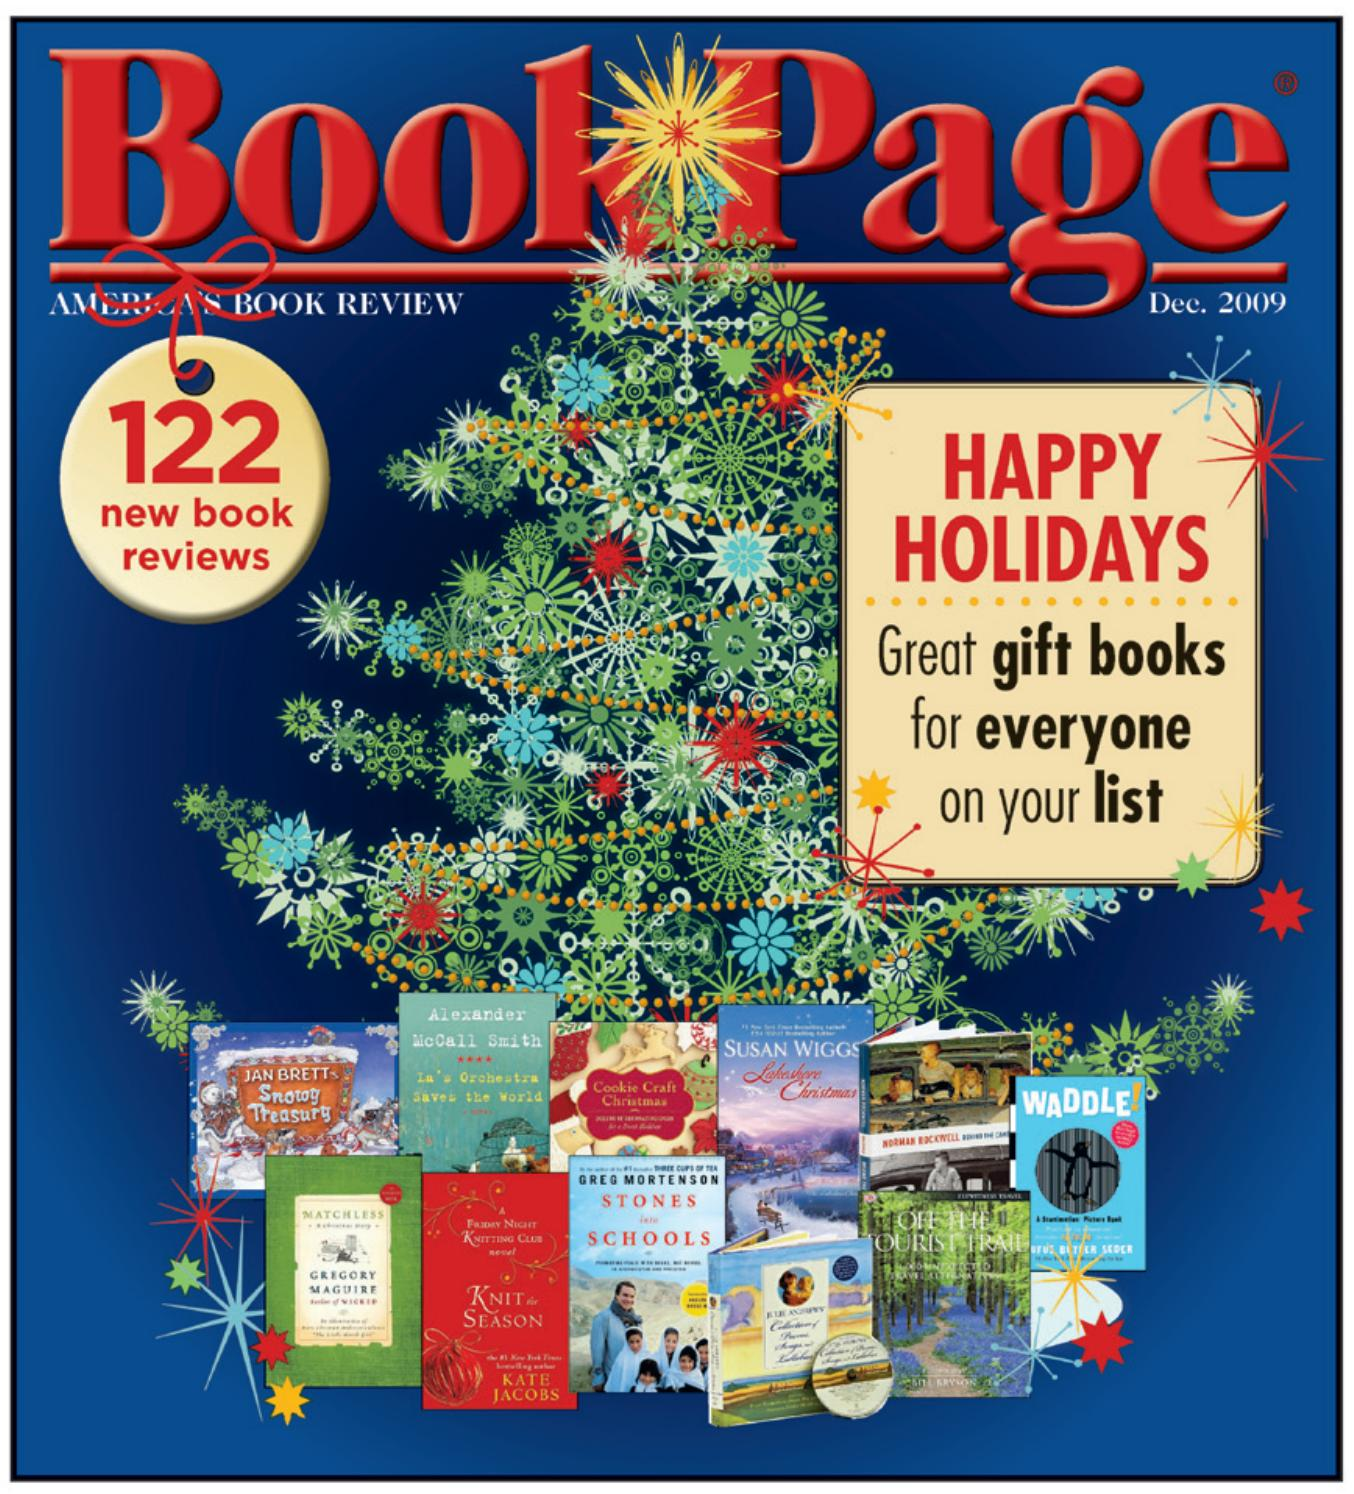 Bookpage December 2009 By Bookpage Issuu